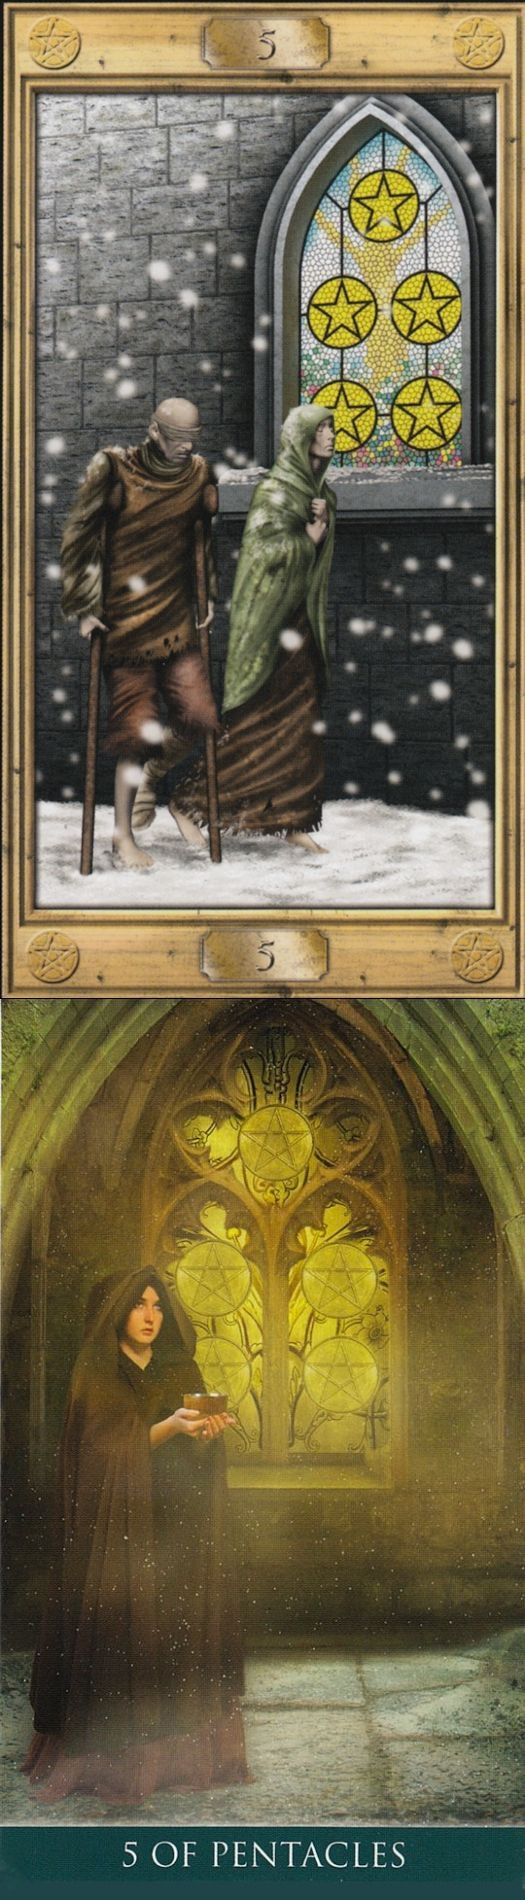 Five of Pentacles: need and recovering from poverty (reverse). Pictorial Tarot deck and Thelema Tarot deck: personal tarot reading, free online tarot reading yes or no vs tarotlenormand. Best 2018 tarot and halloween decor diy.